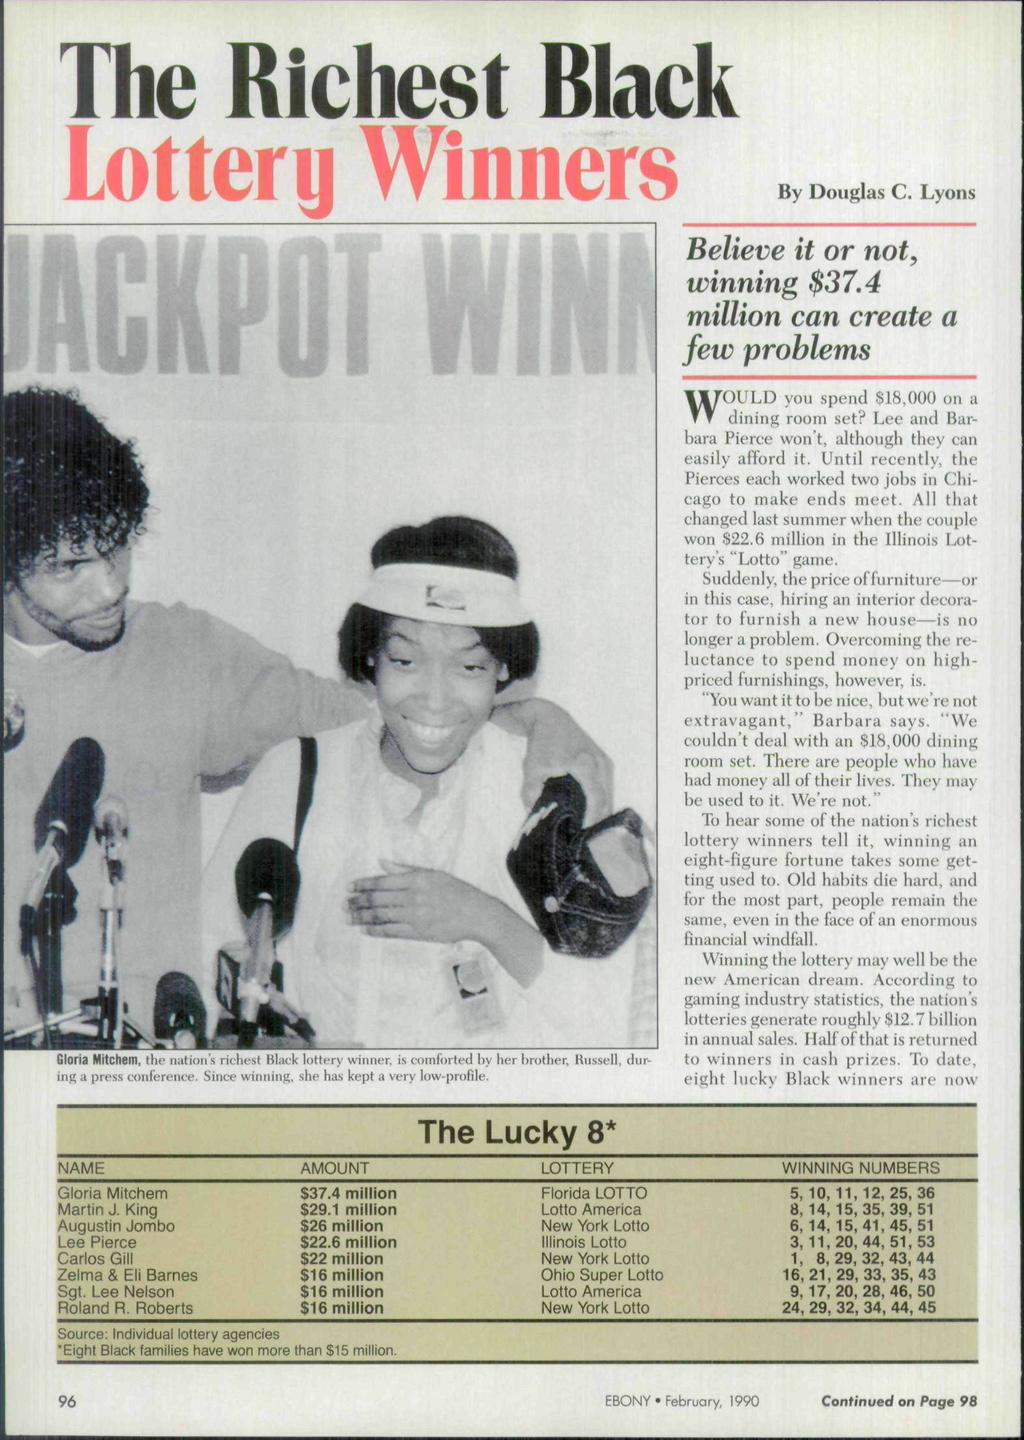 lagkpot The Richest Black Lottery Winners WOULD you spend $18,000 on